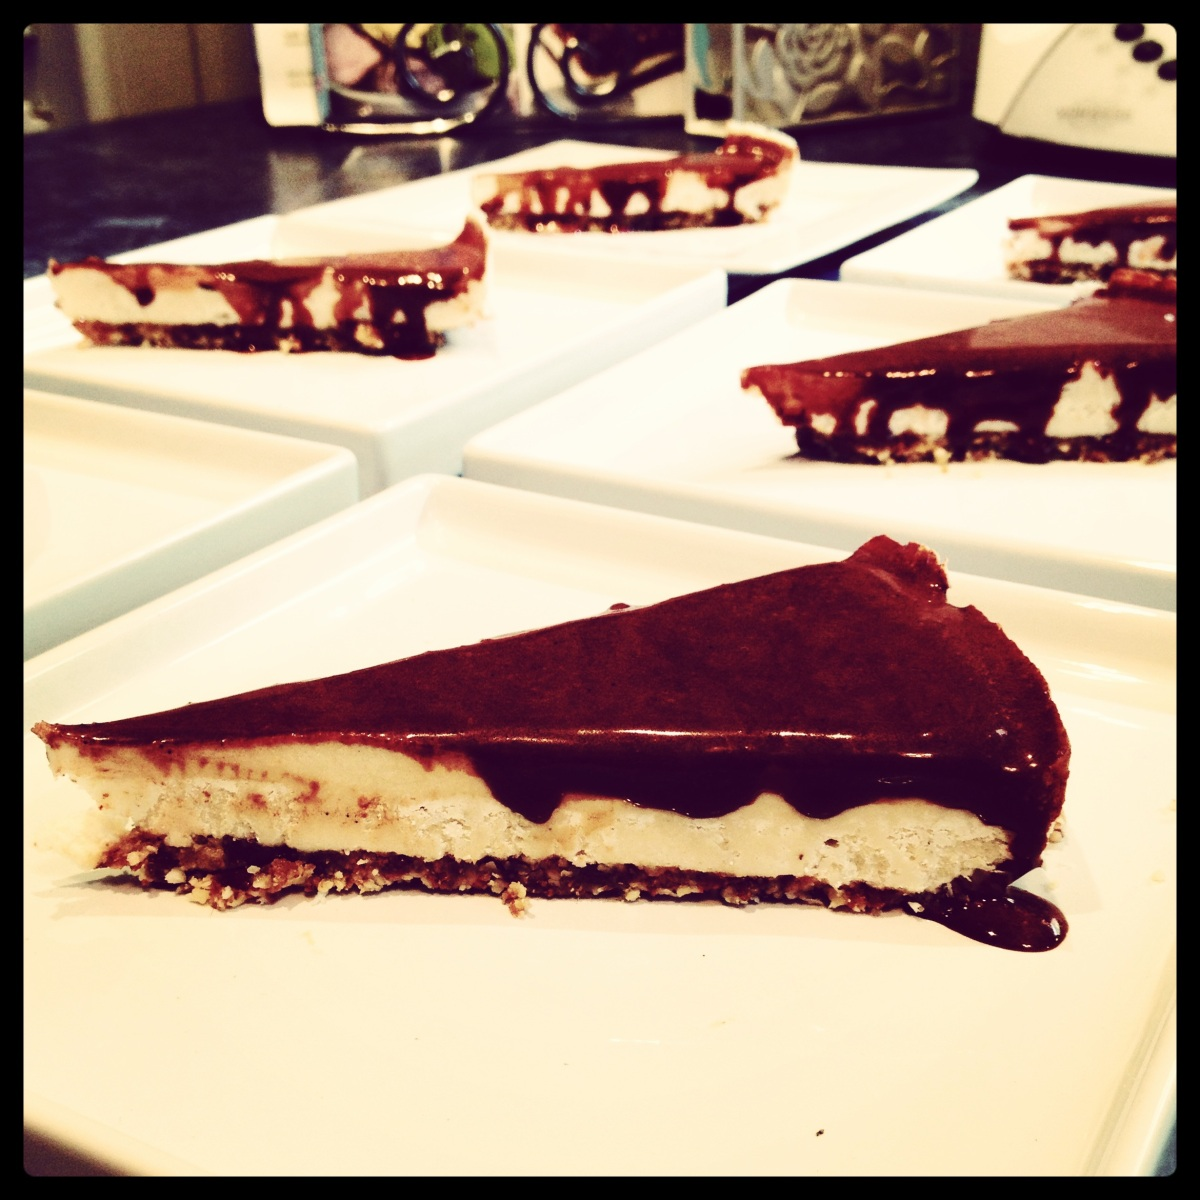 New York Cheesecake with Chocolate Ganache Sauce